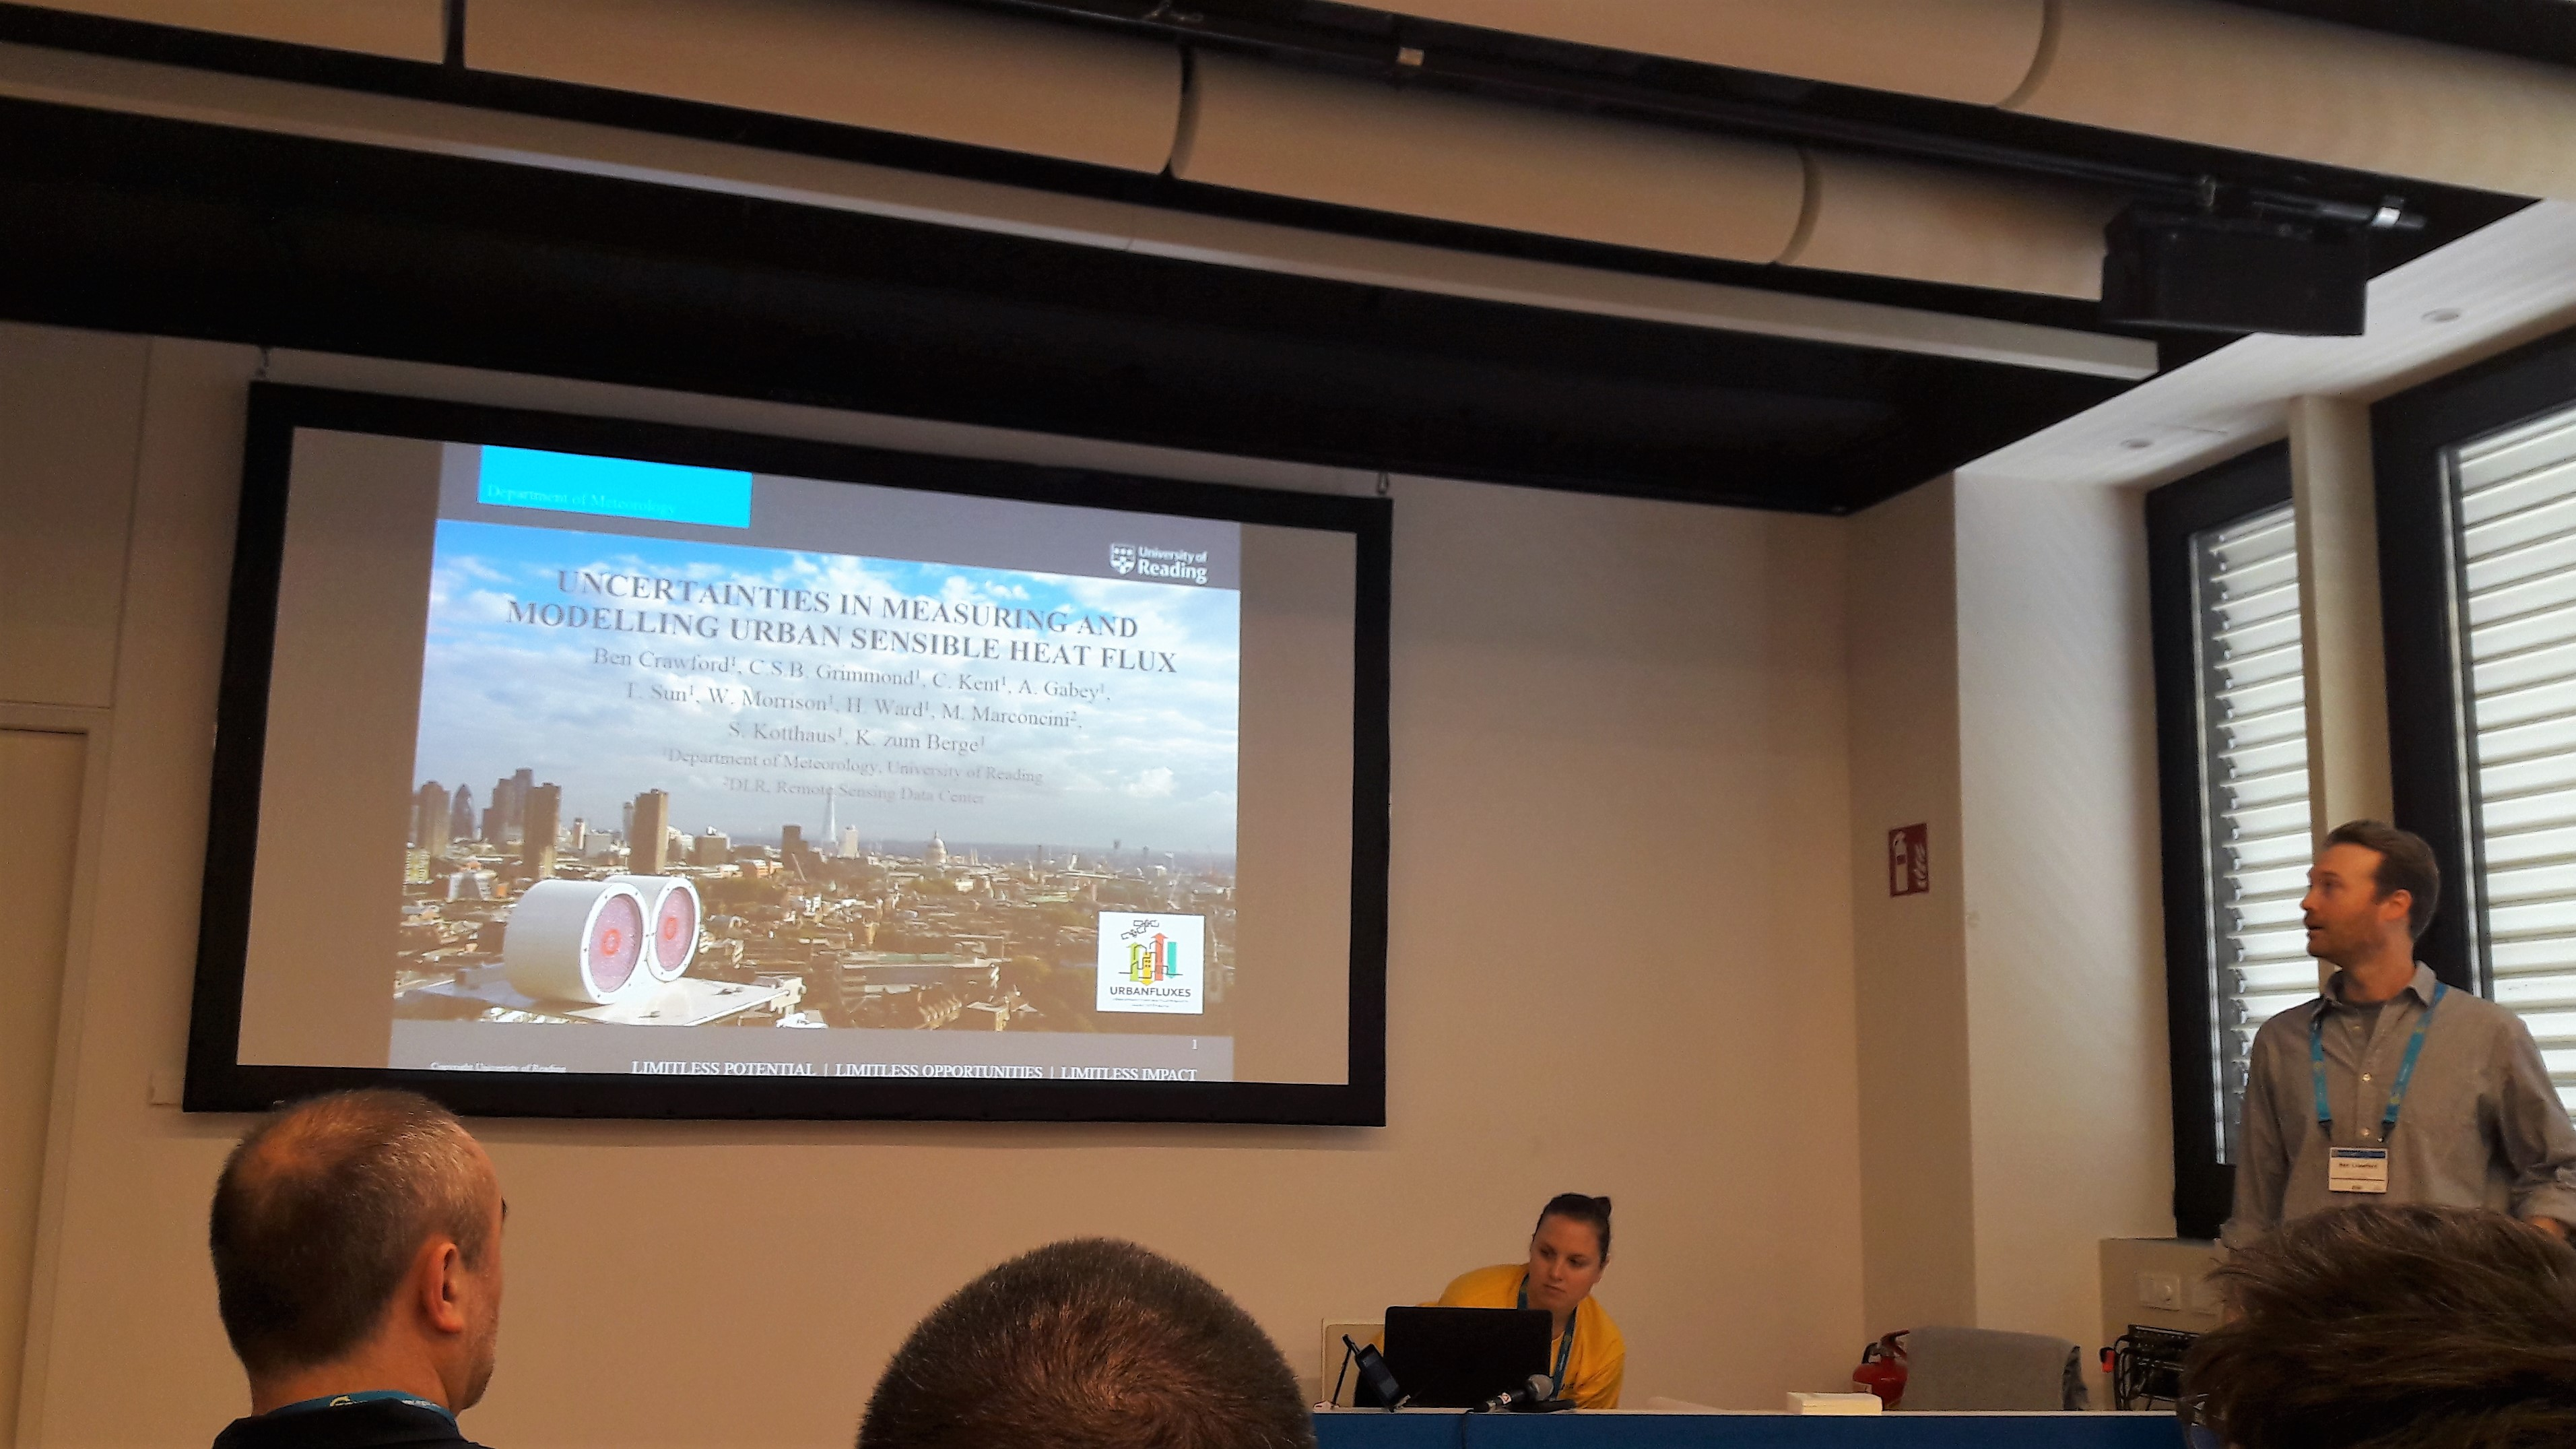 Dr. Ben Crawford presenting the turbulent heat fluxes measuring methodologies in the EGU General Assembly, 2017